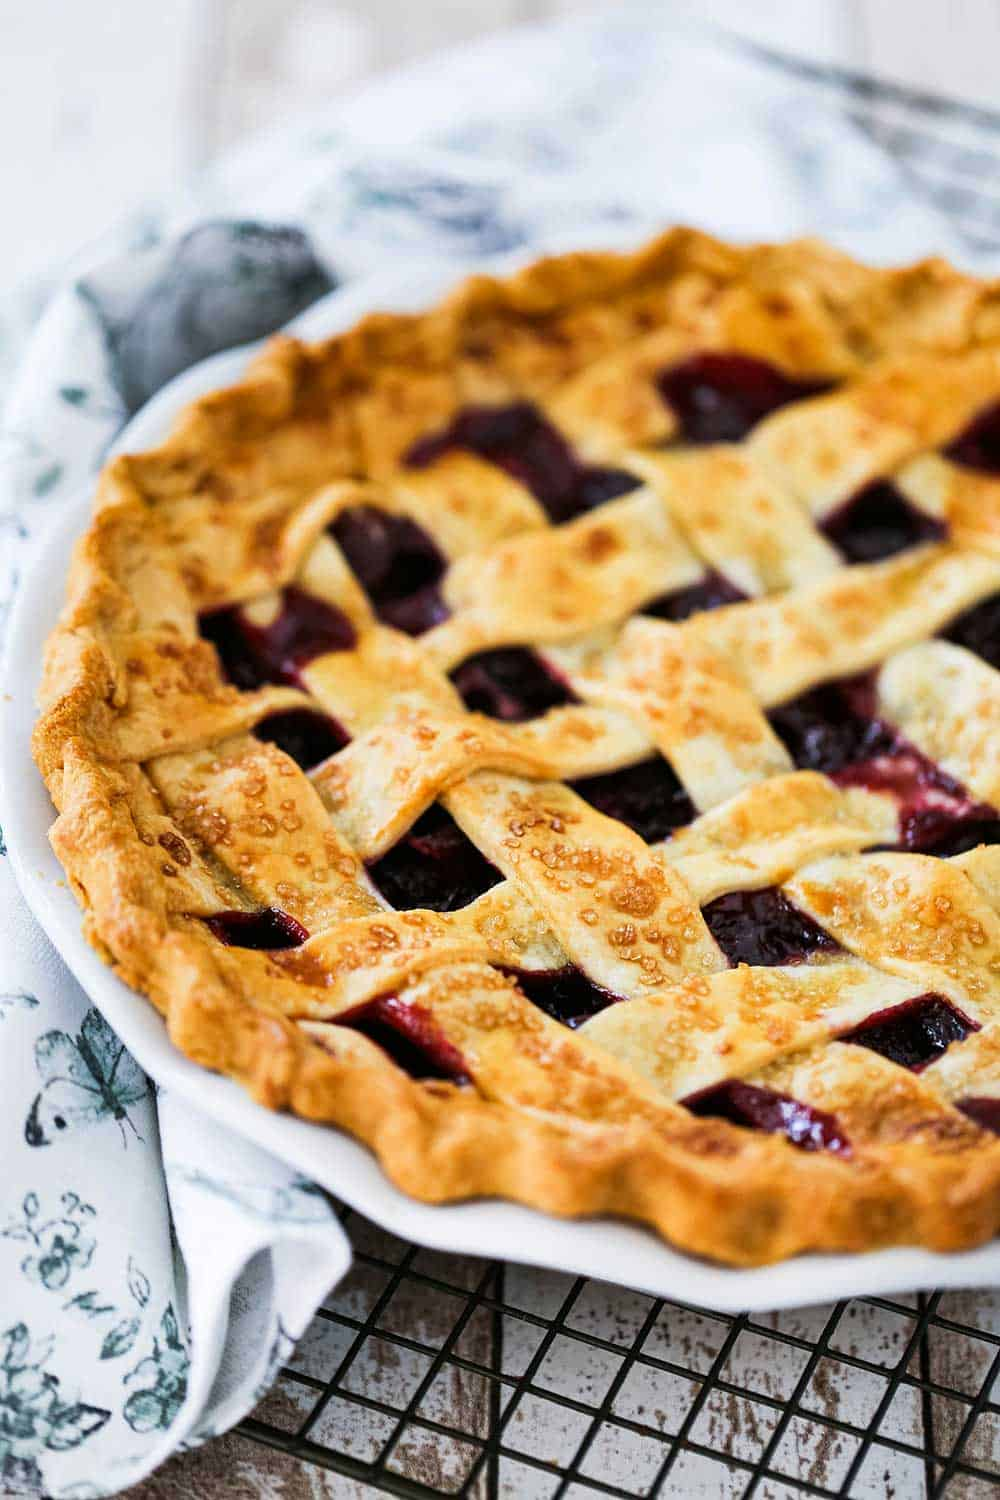 A white pie dish filled with a fully baked cherry pie with a lattice crust topping on it.